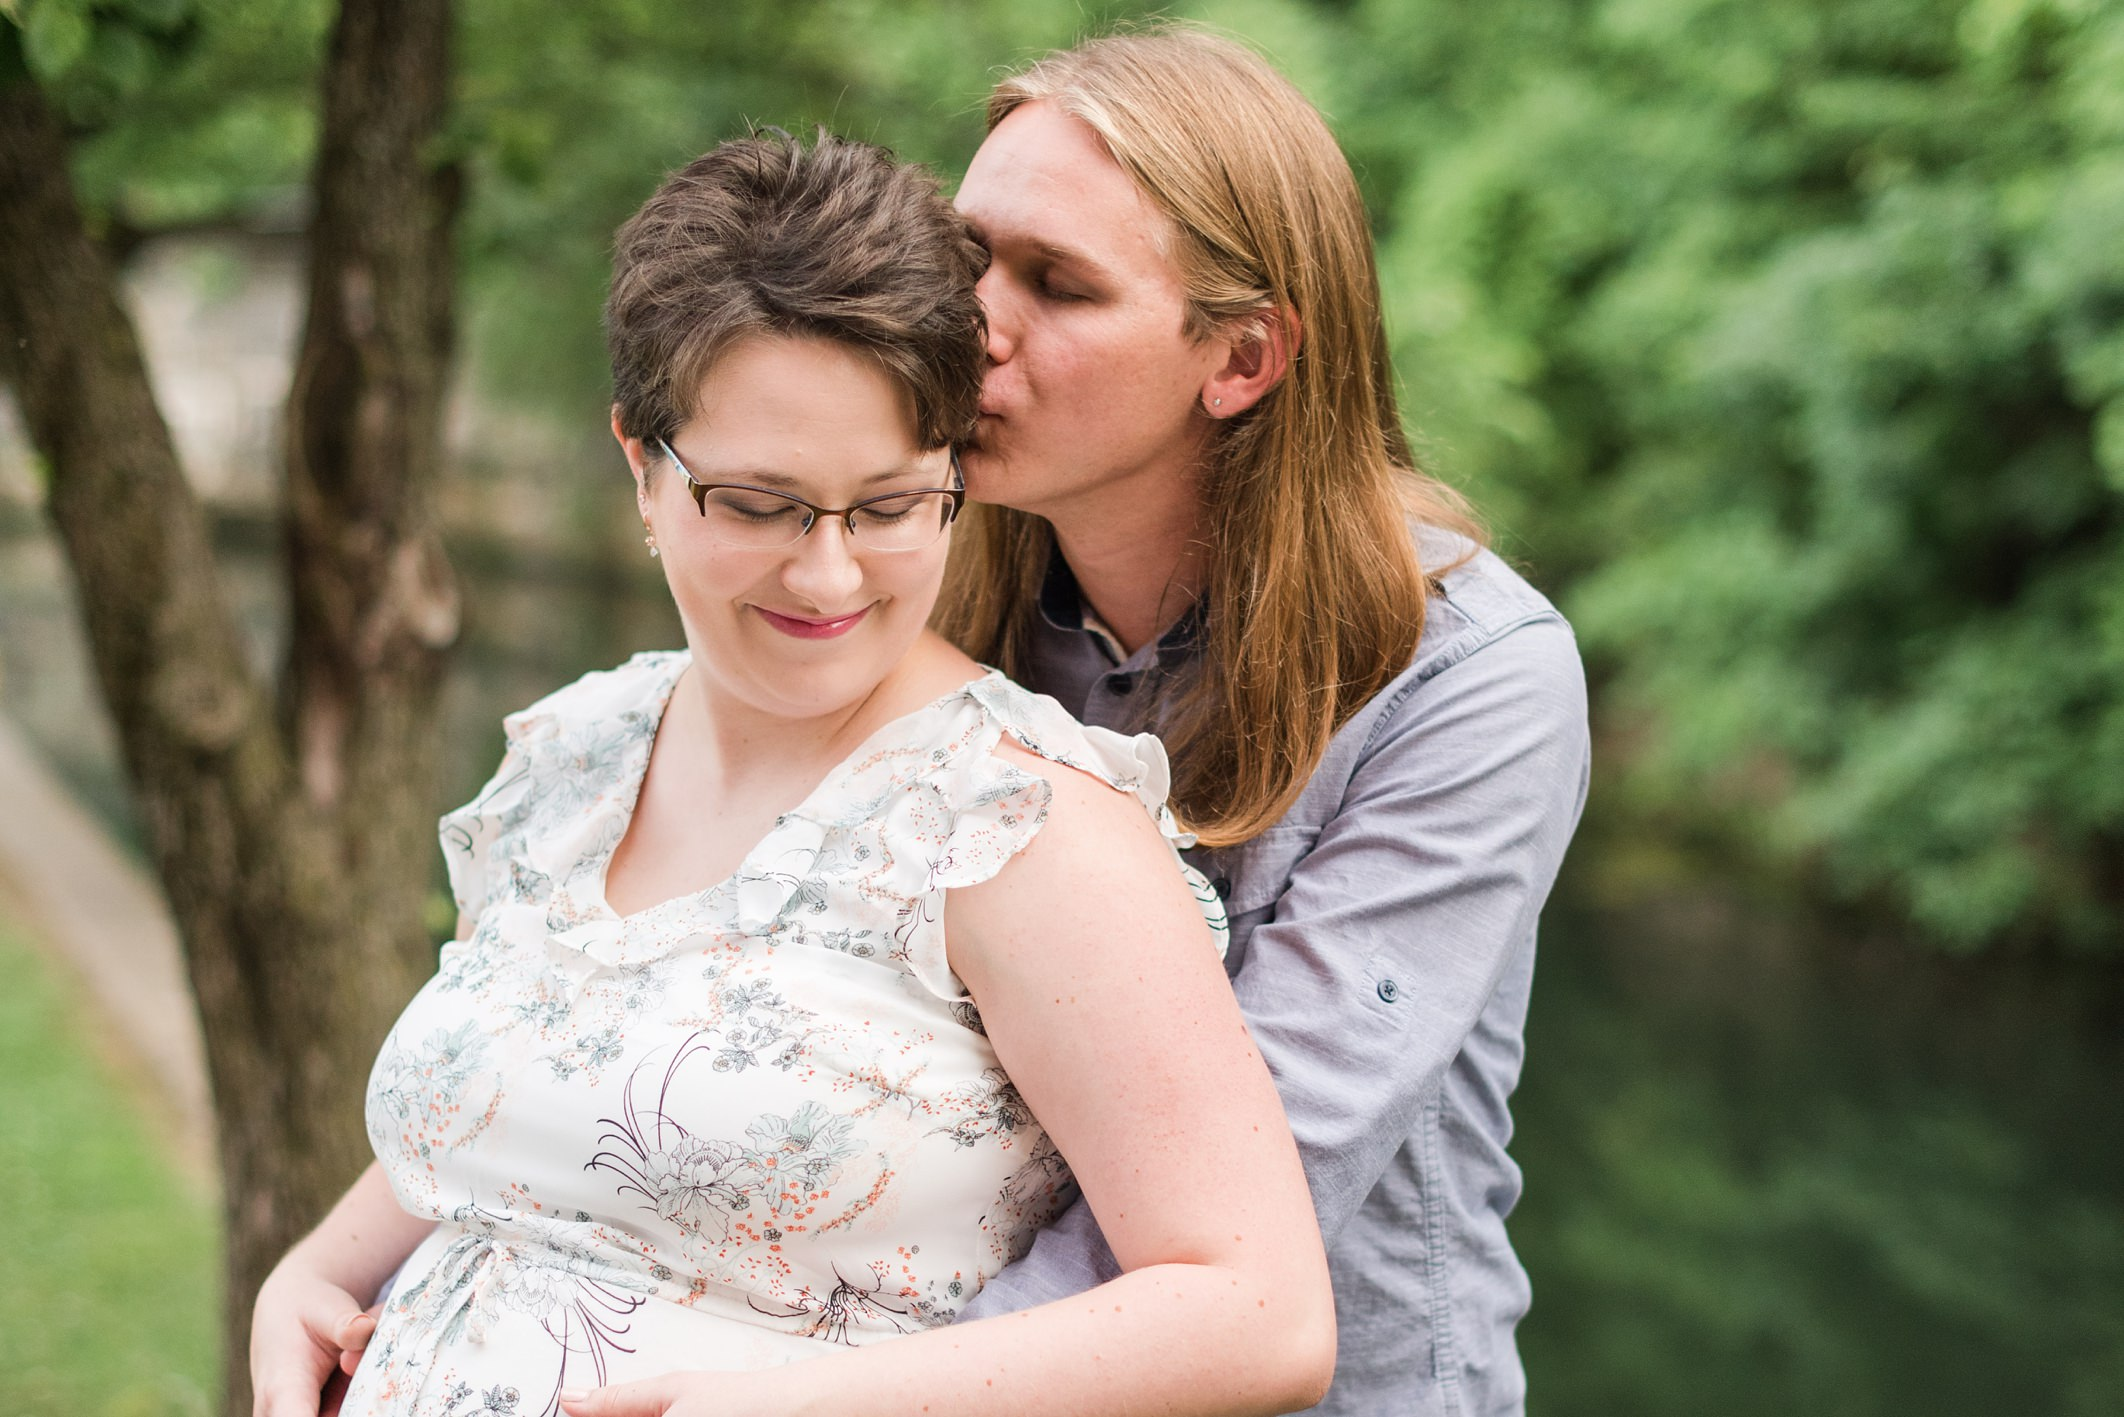 Headrick Maternity Photos in Siloam Springs, AR